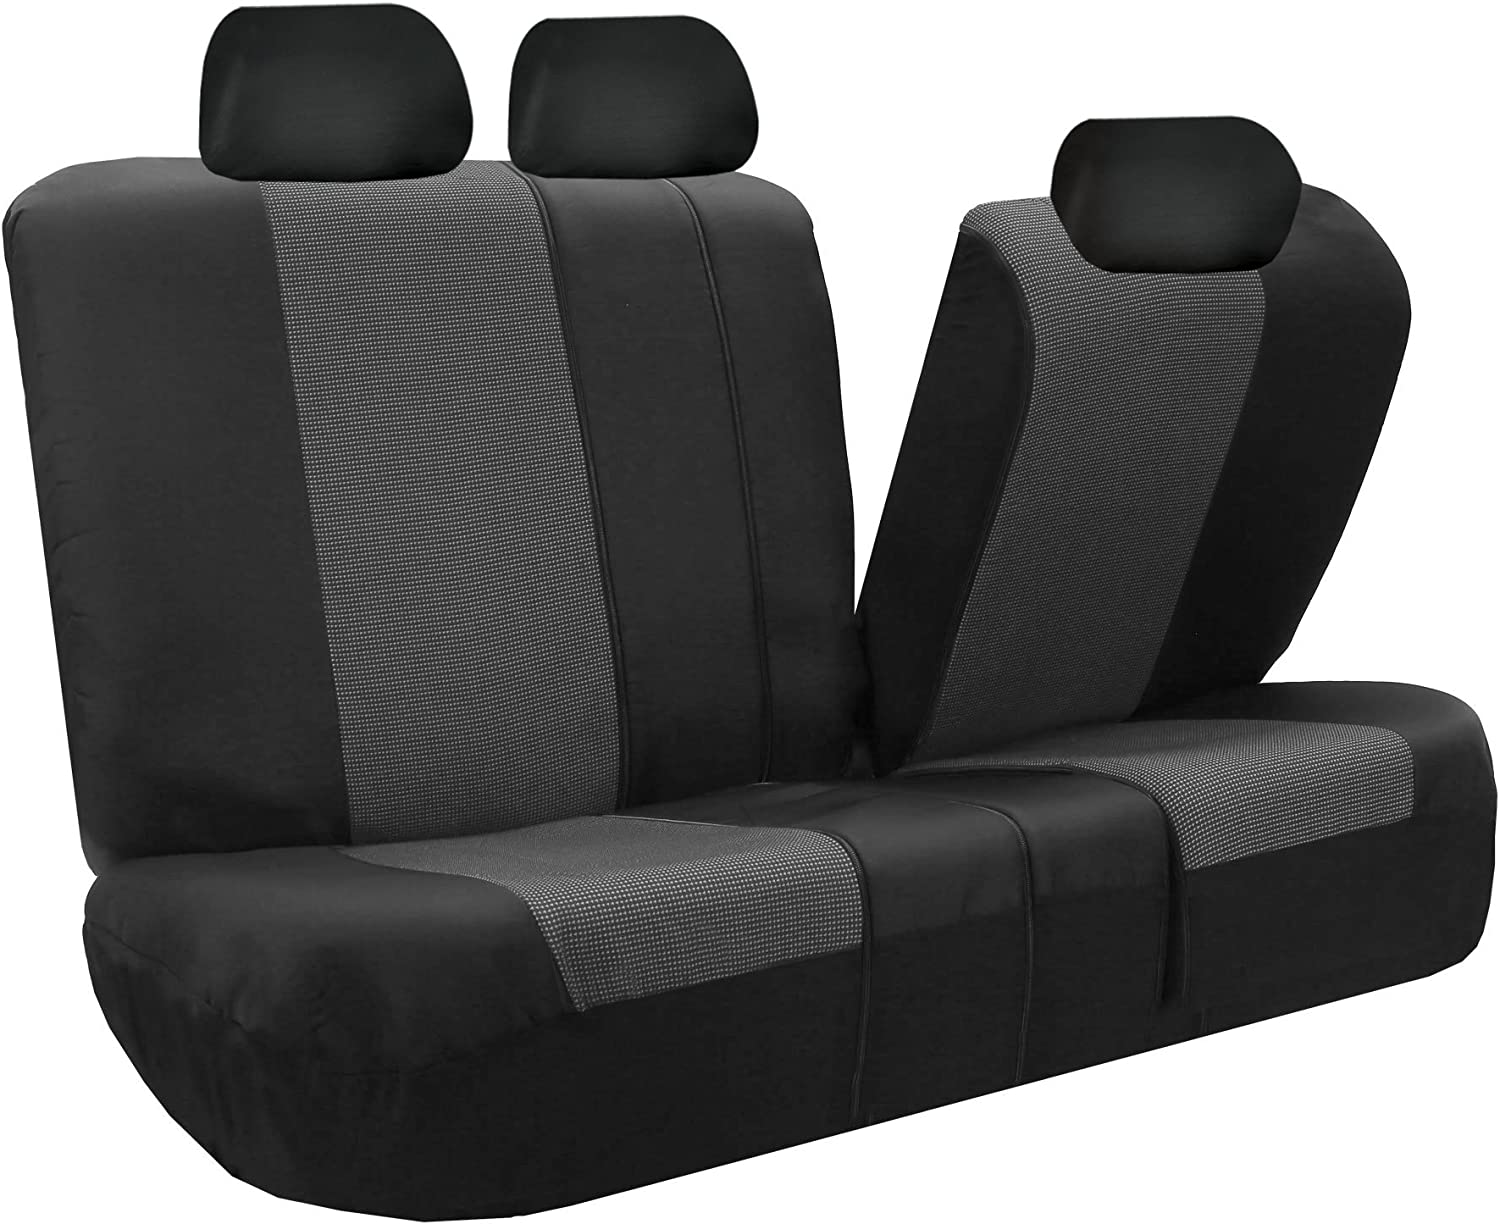 FH Group Light /& Breezy Cloth Seat Cover Set Airbag /& Split Ready Truck Gray//Black- Fit Most Car SUV or Van